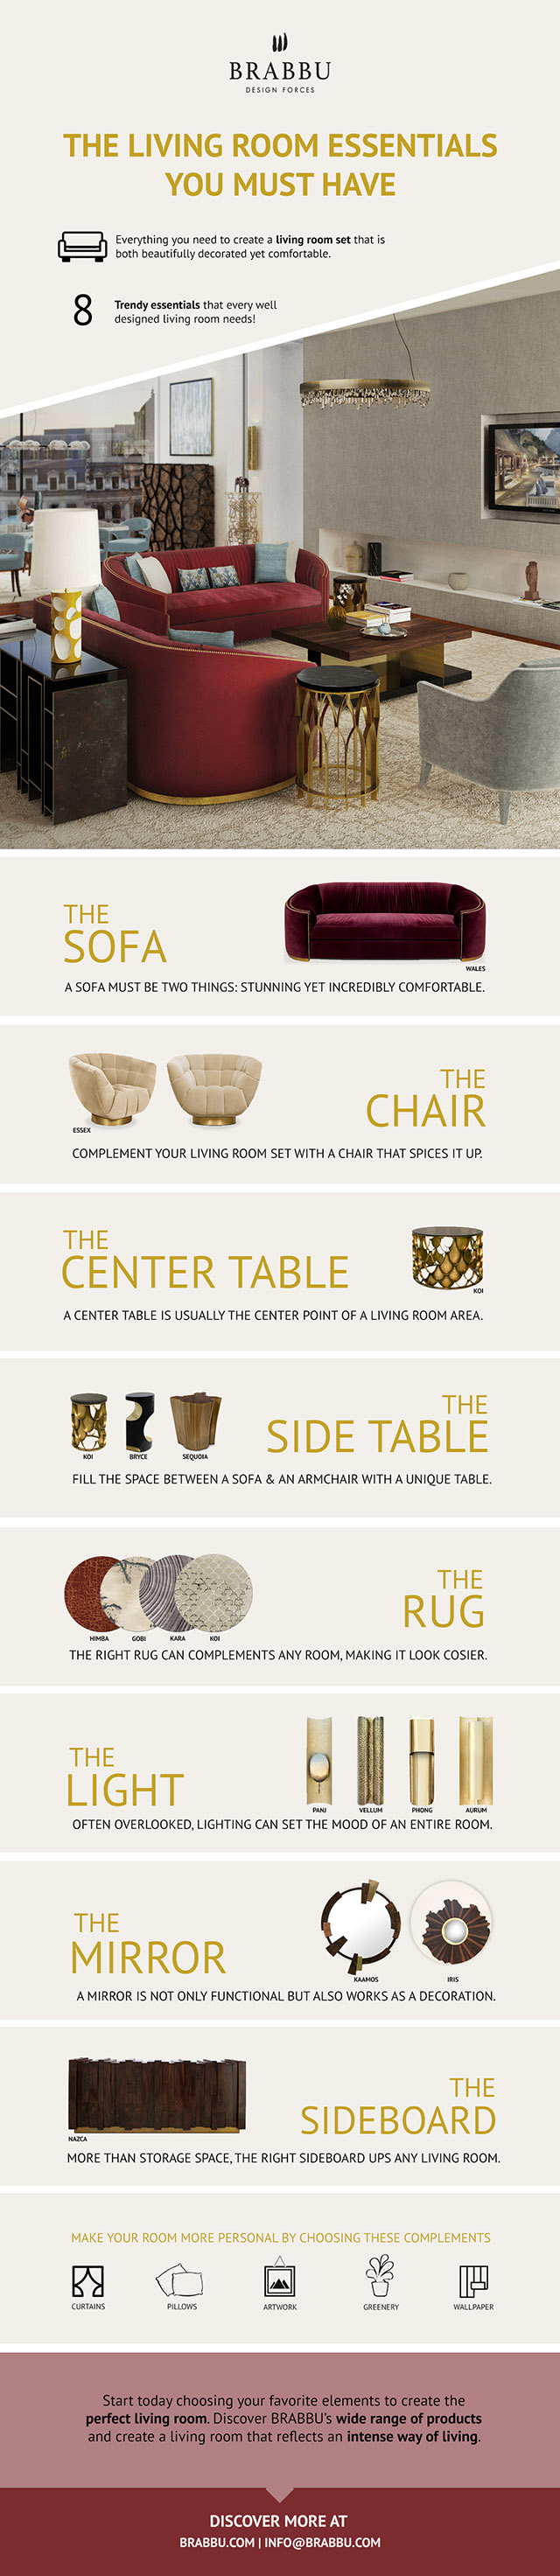 Living Room Essentials Your Must Have Guide for This Summer Remodel  News  Events by BRABBU